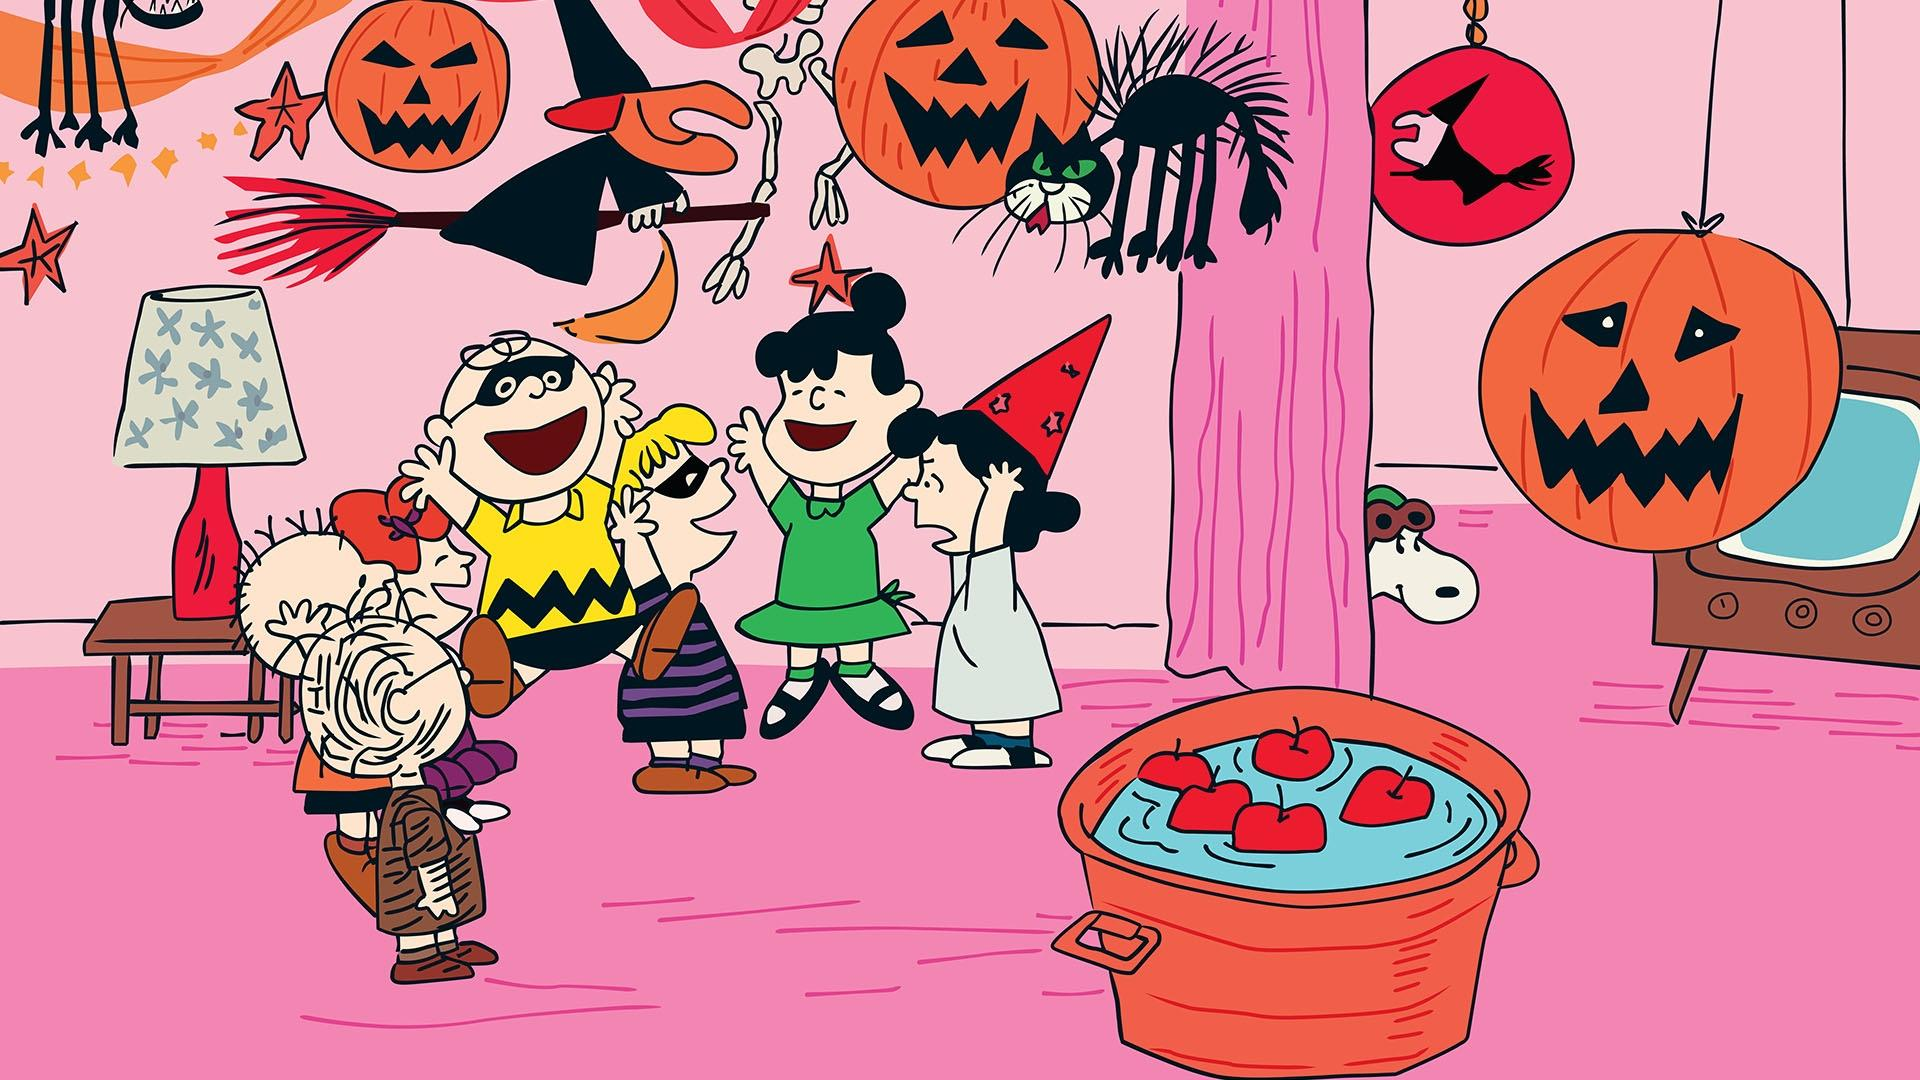 scene from Charlie Brown